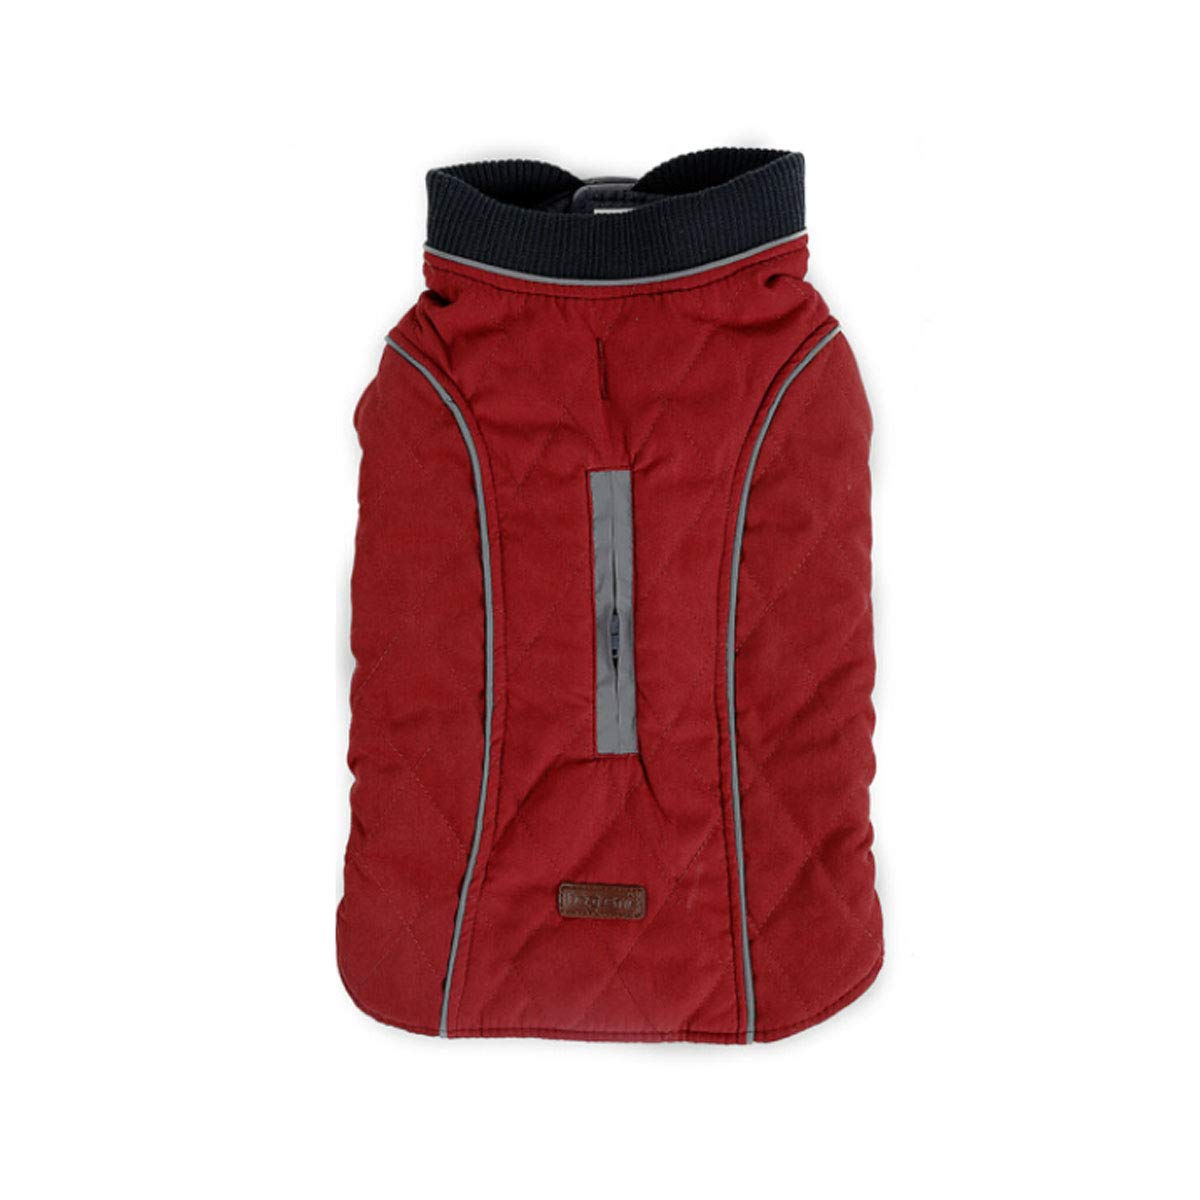 Red M Red M Huijunwenti Winter Dog Clothes, Pet Warm Jacket, Vest New, Big Dog Retro Thick Vest, Clothing Red XXXL Fashion (color   Red, Size   M)